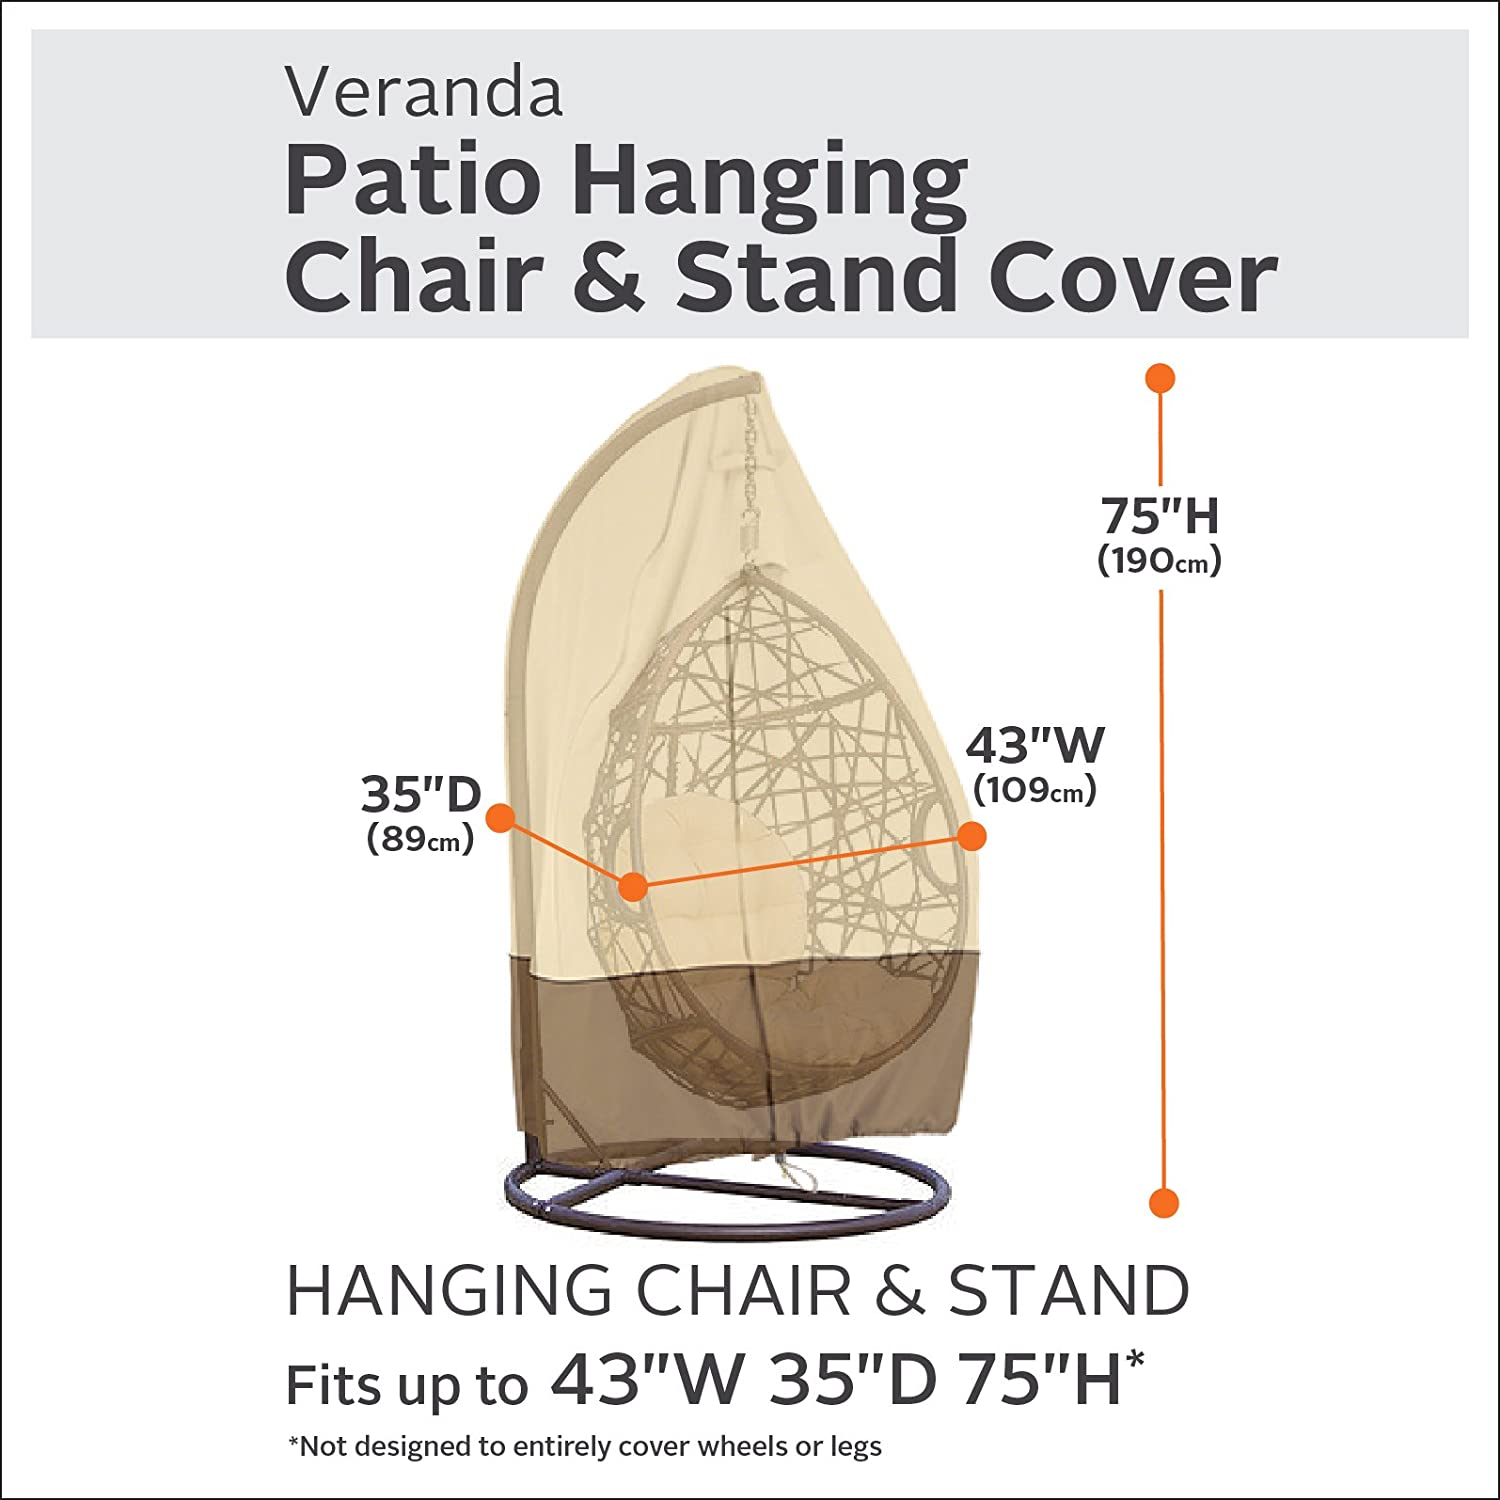 Classic Accessories Veranda Patio Hanging Chair And Stand Cover